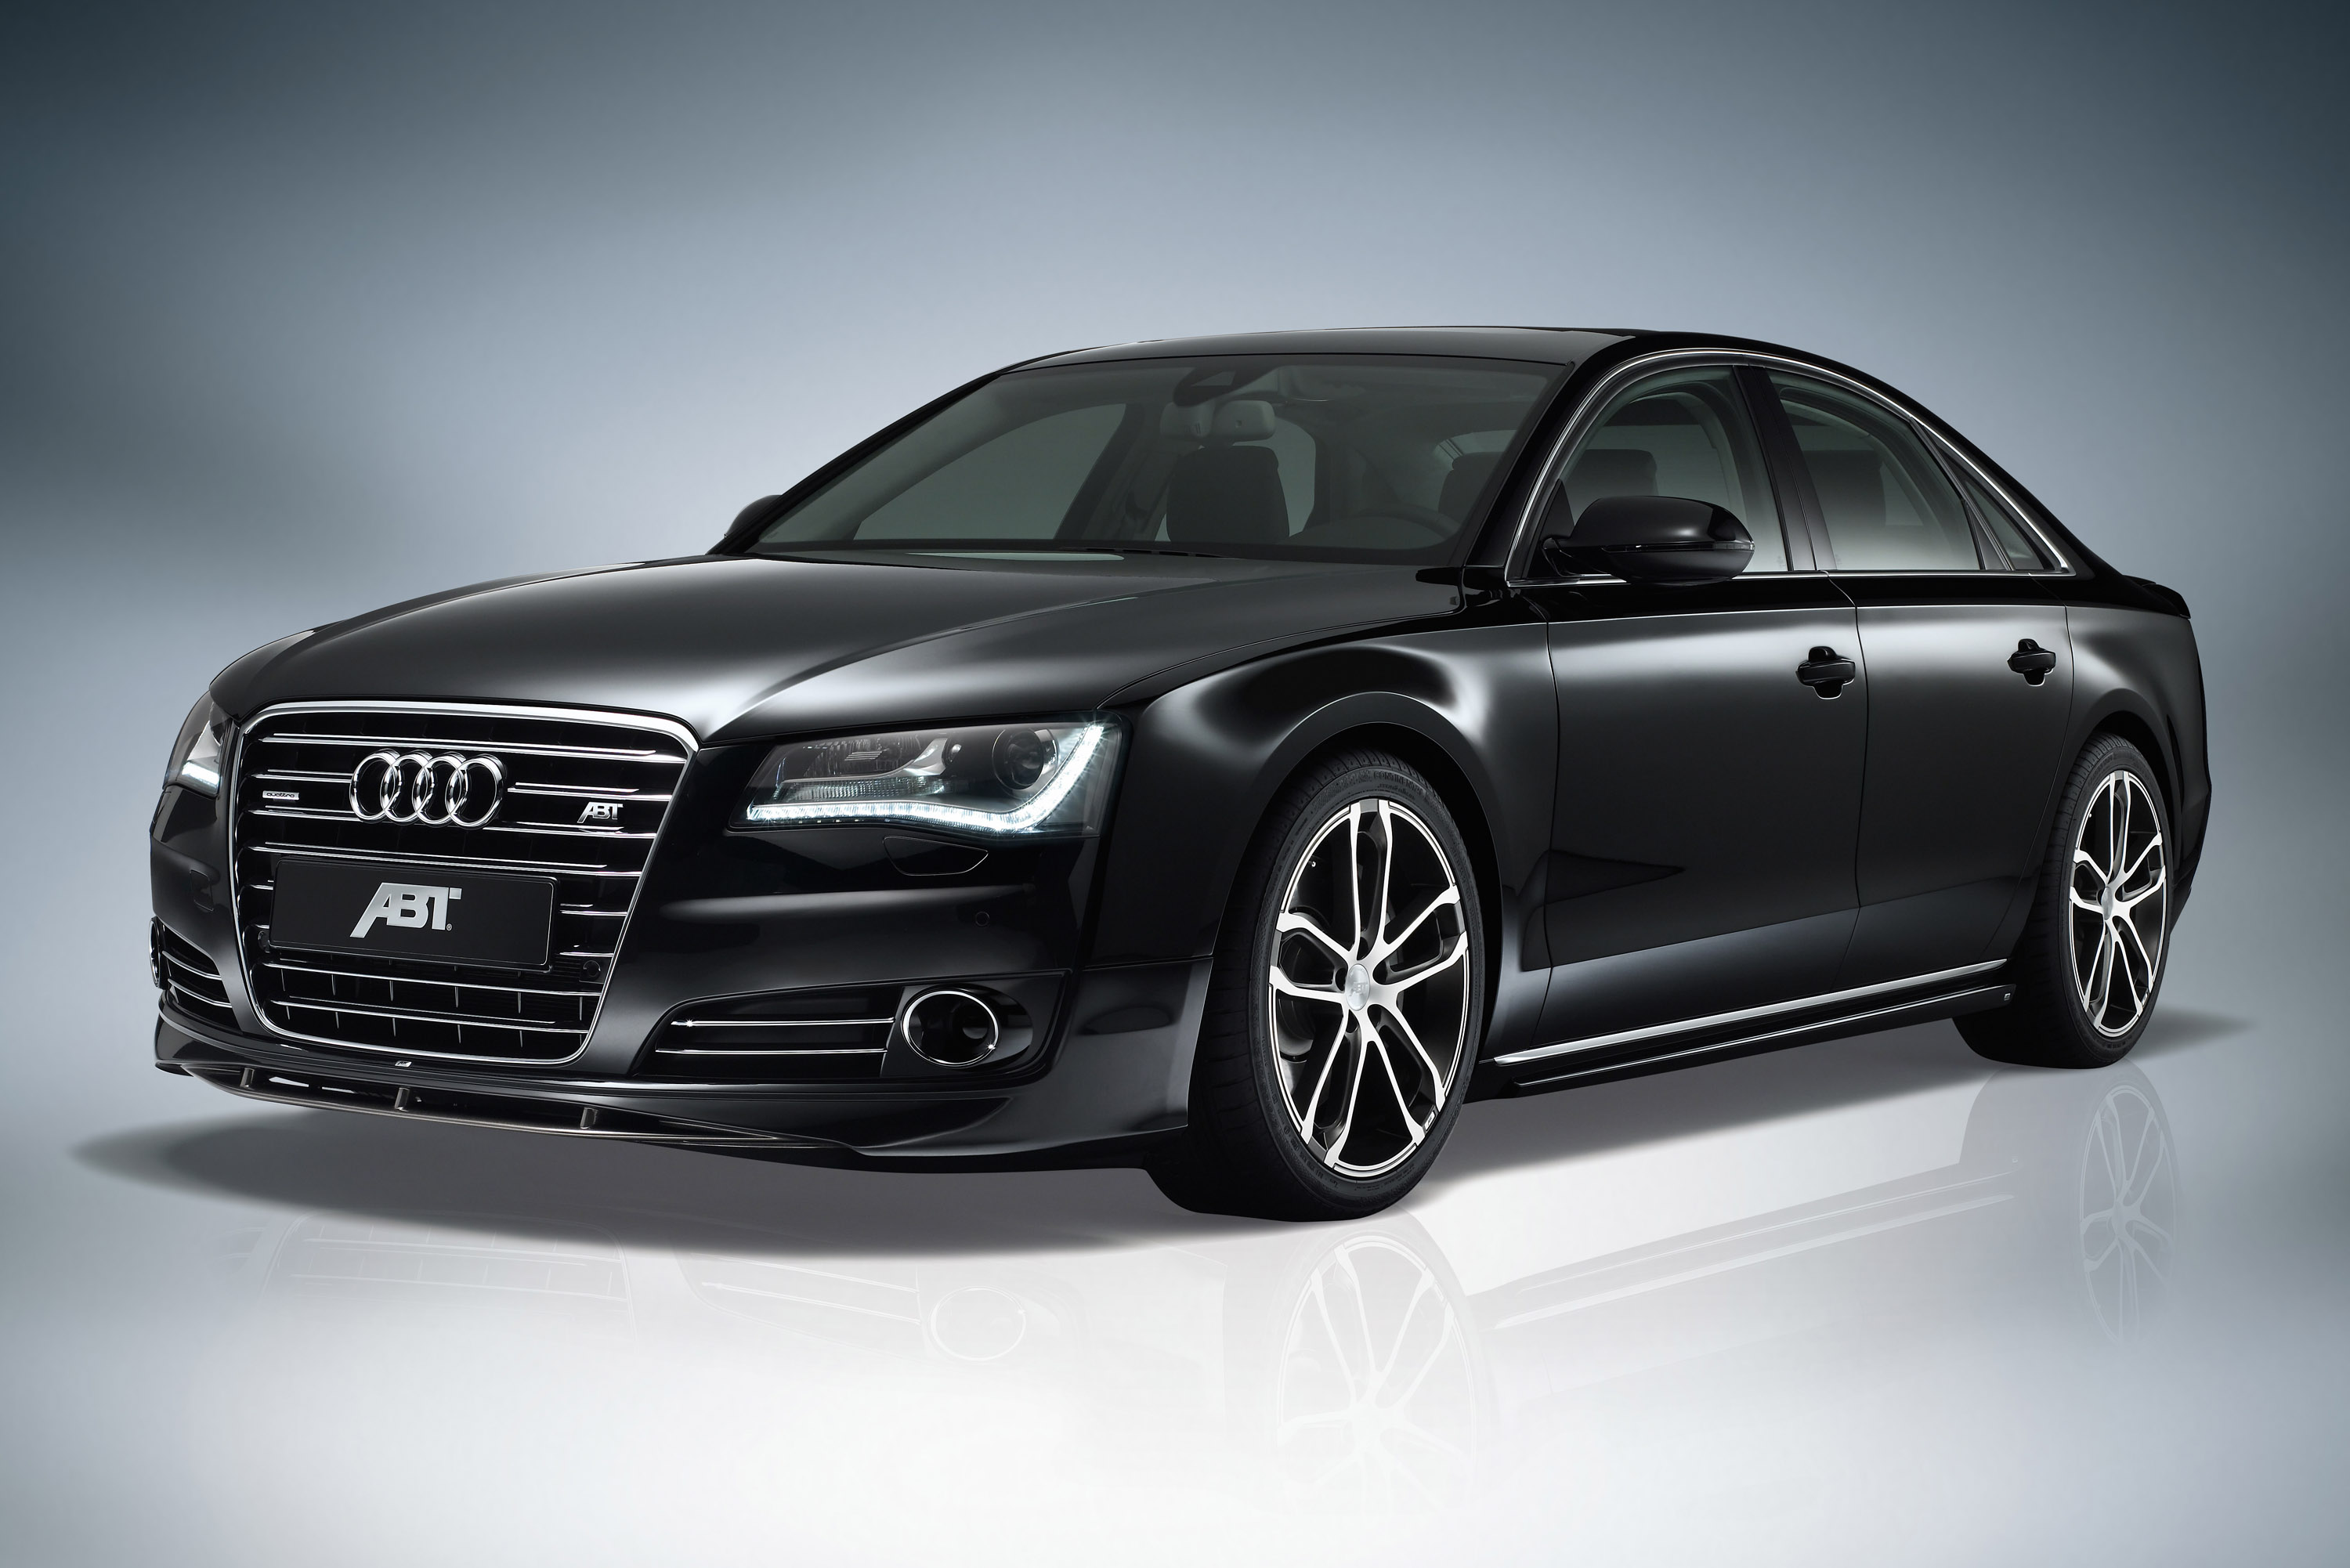 ABT Sportsline goes easy on the 2011 Audi A8